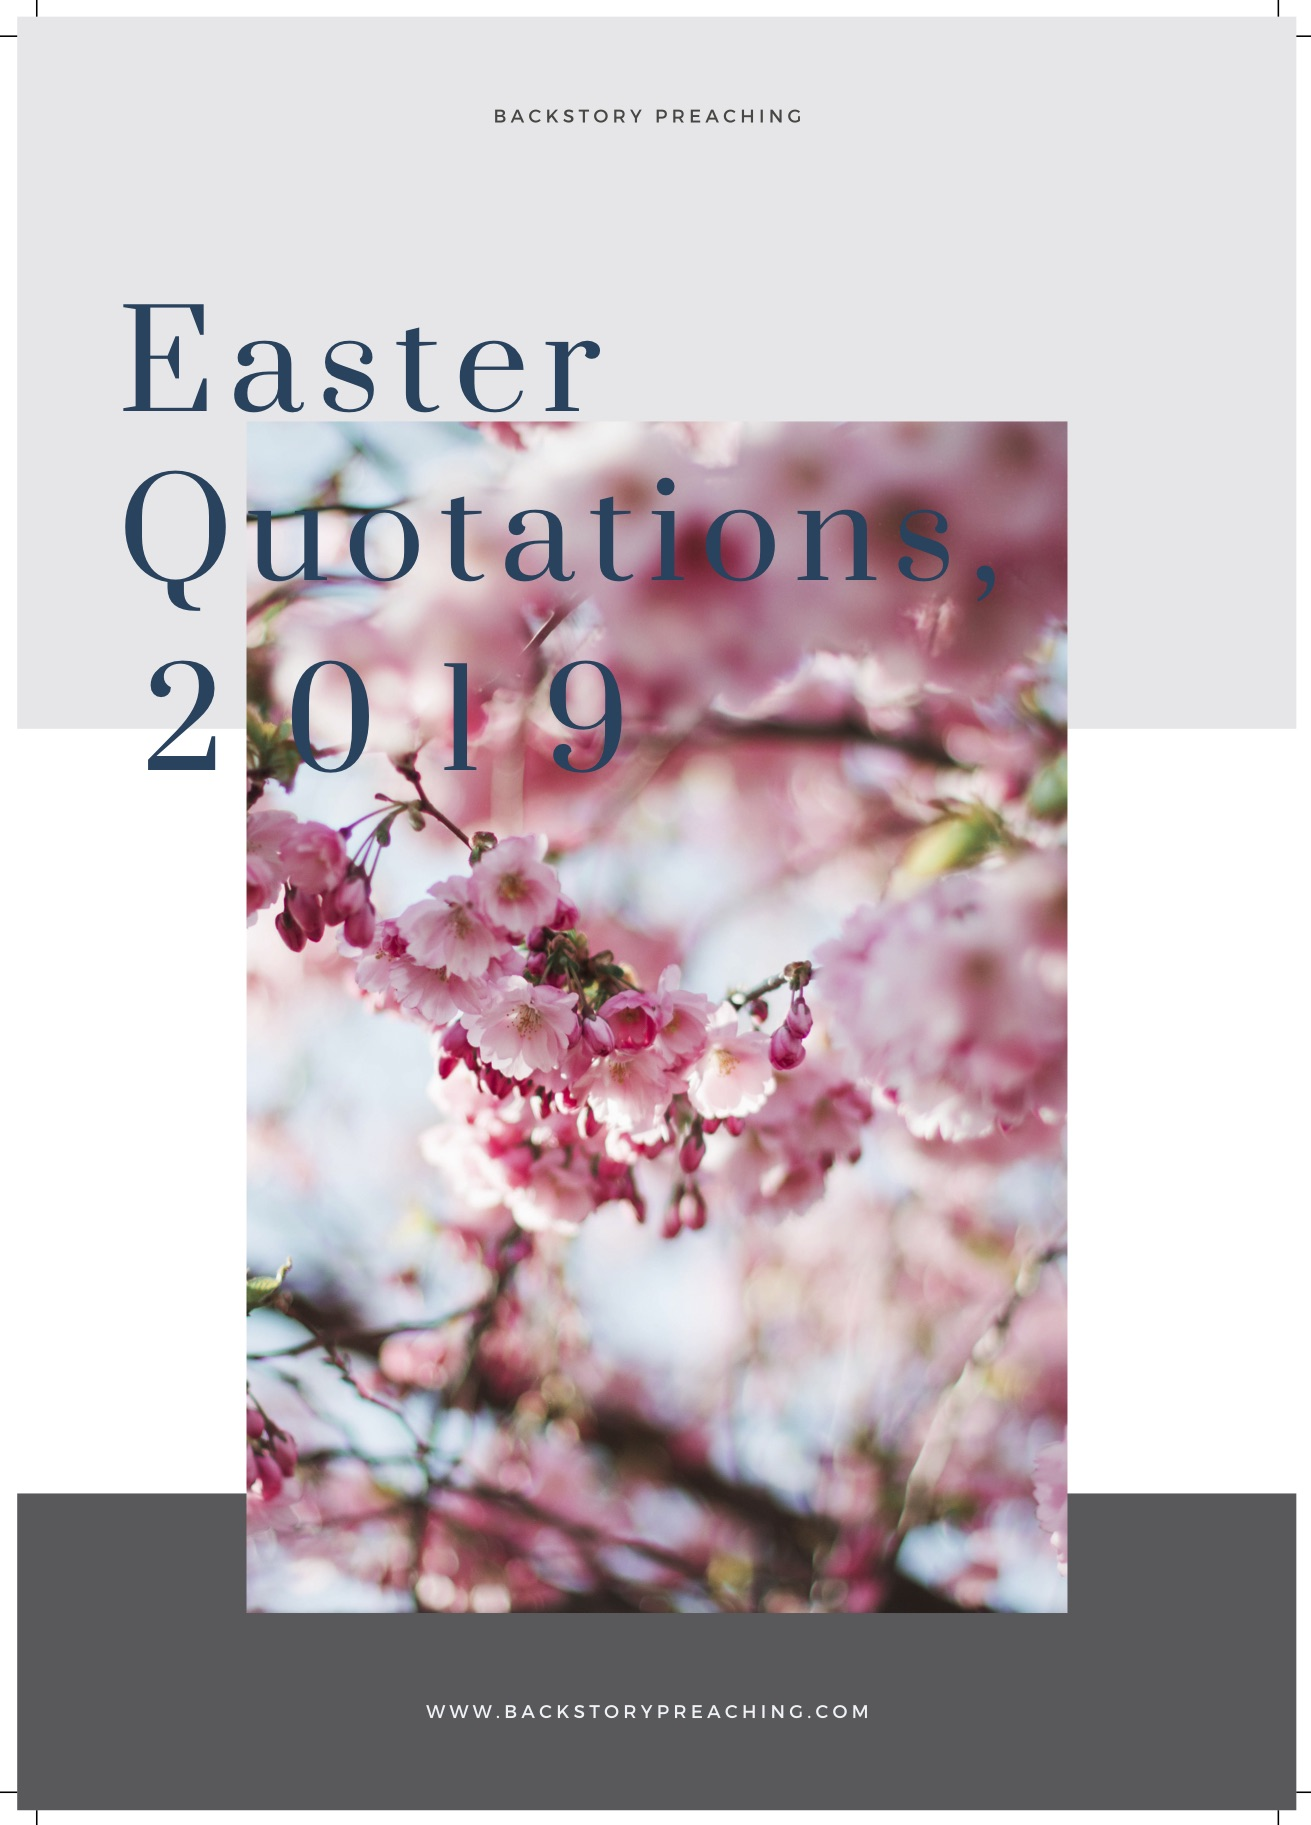 Easter Quotations, 2019, cover.jpg